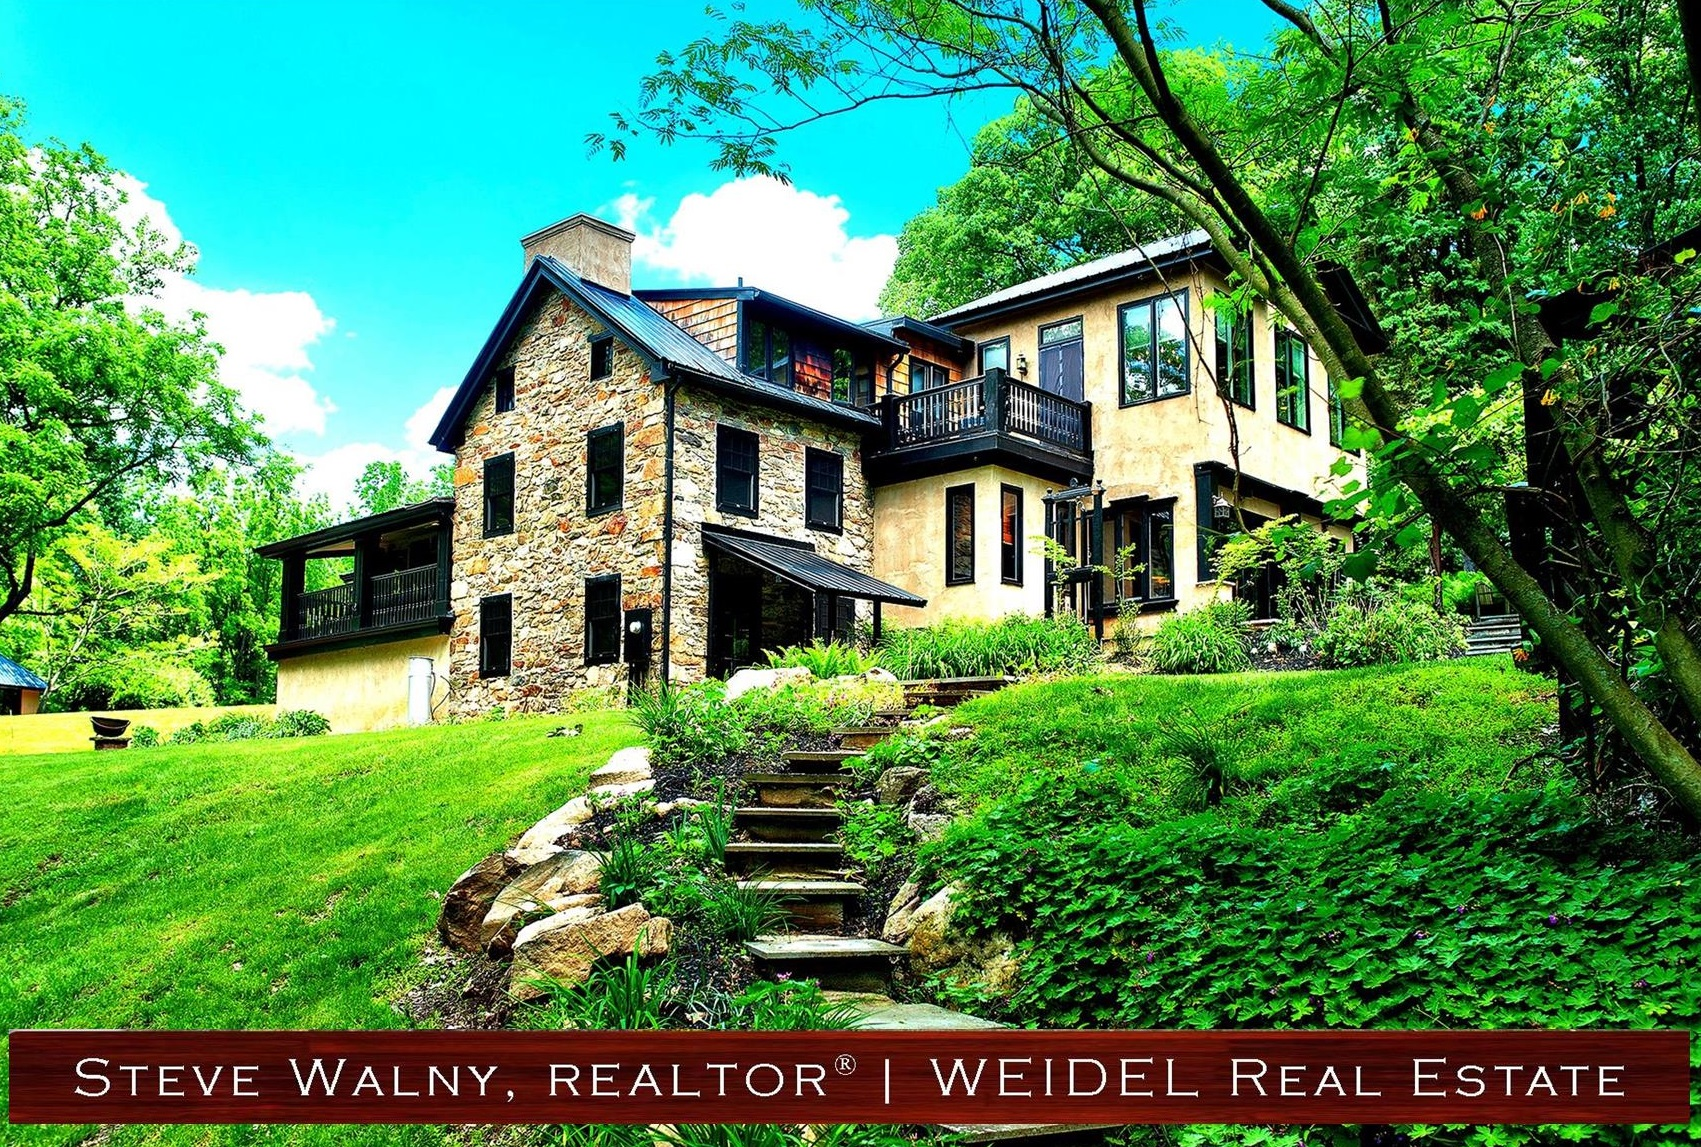 Stone Homes In Bucks County For New Hope Realtor Steve Walny